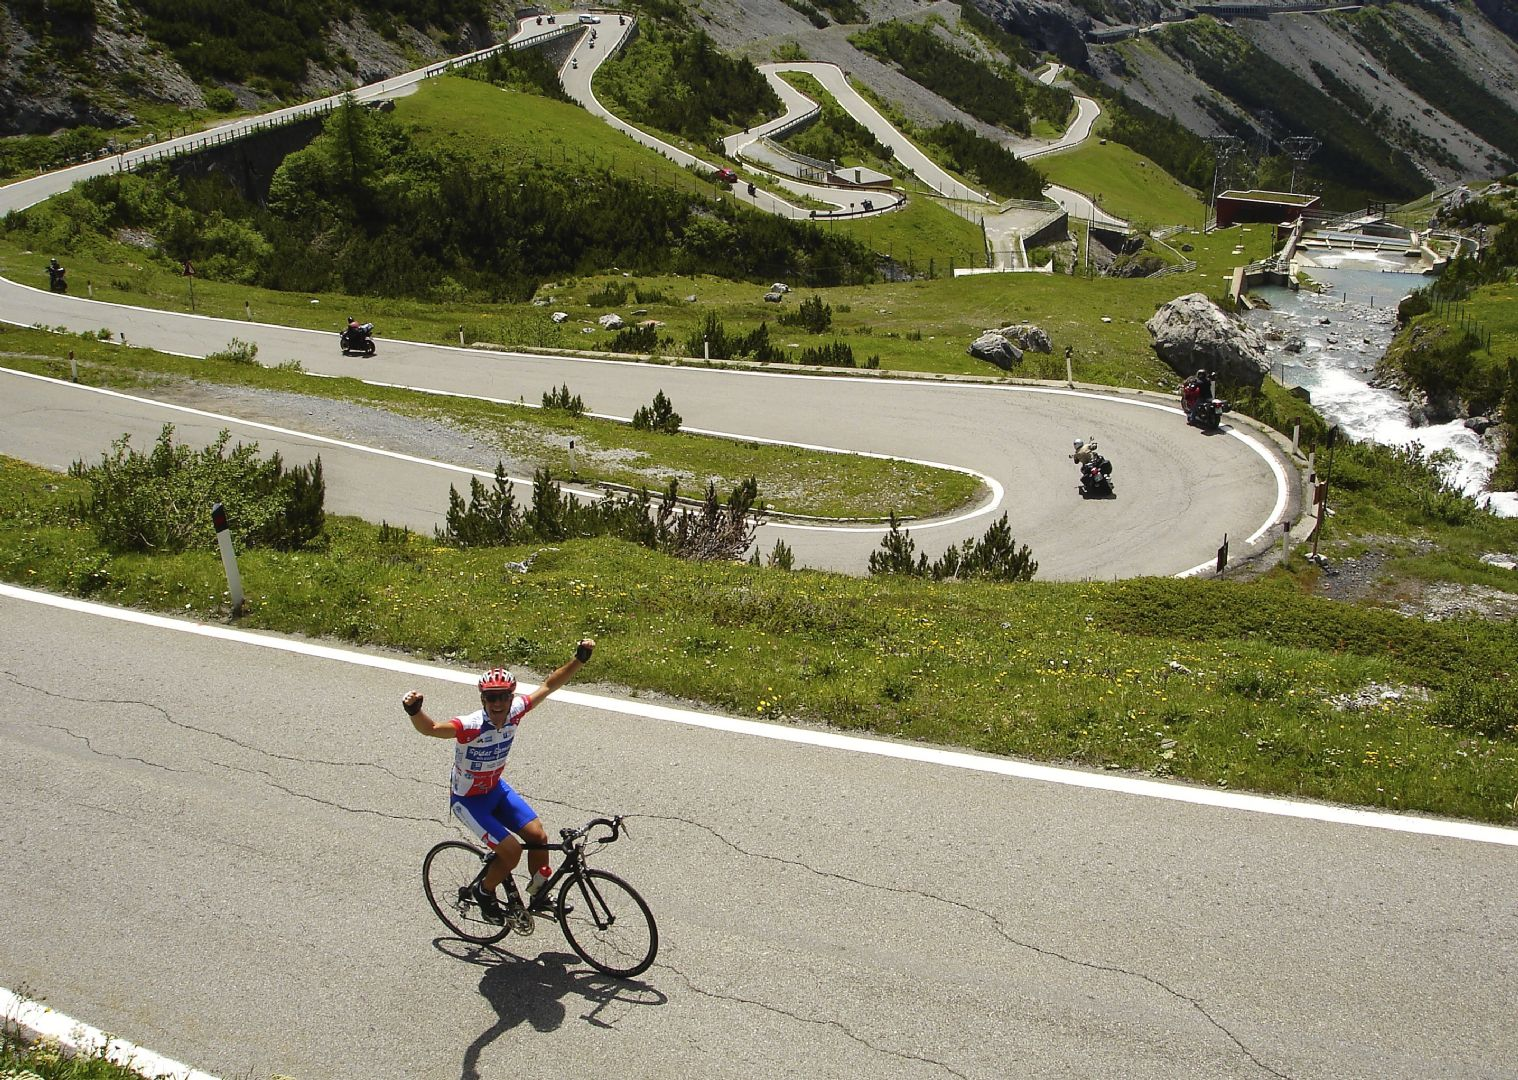 tornanti verso lo Stelvio.jpg - Italy - Dolomites and Alps - Italia Road Cycling